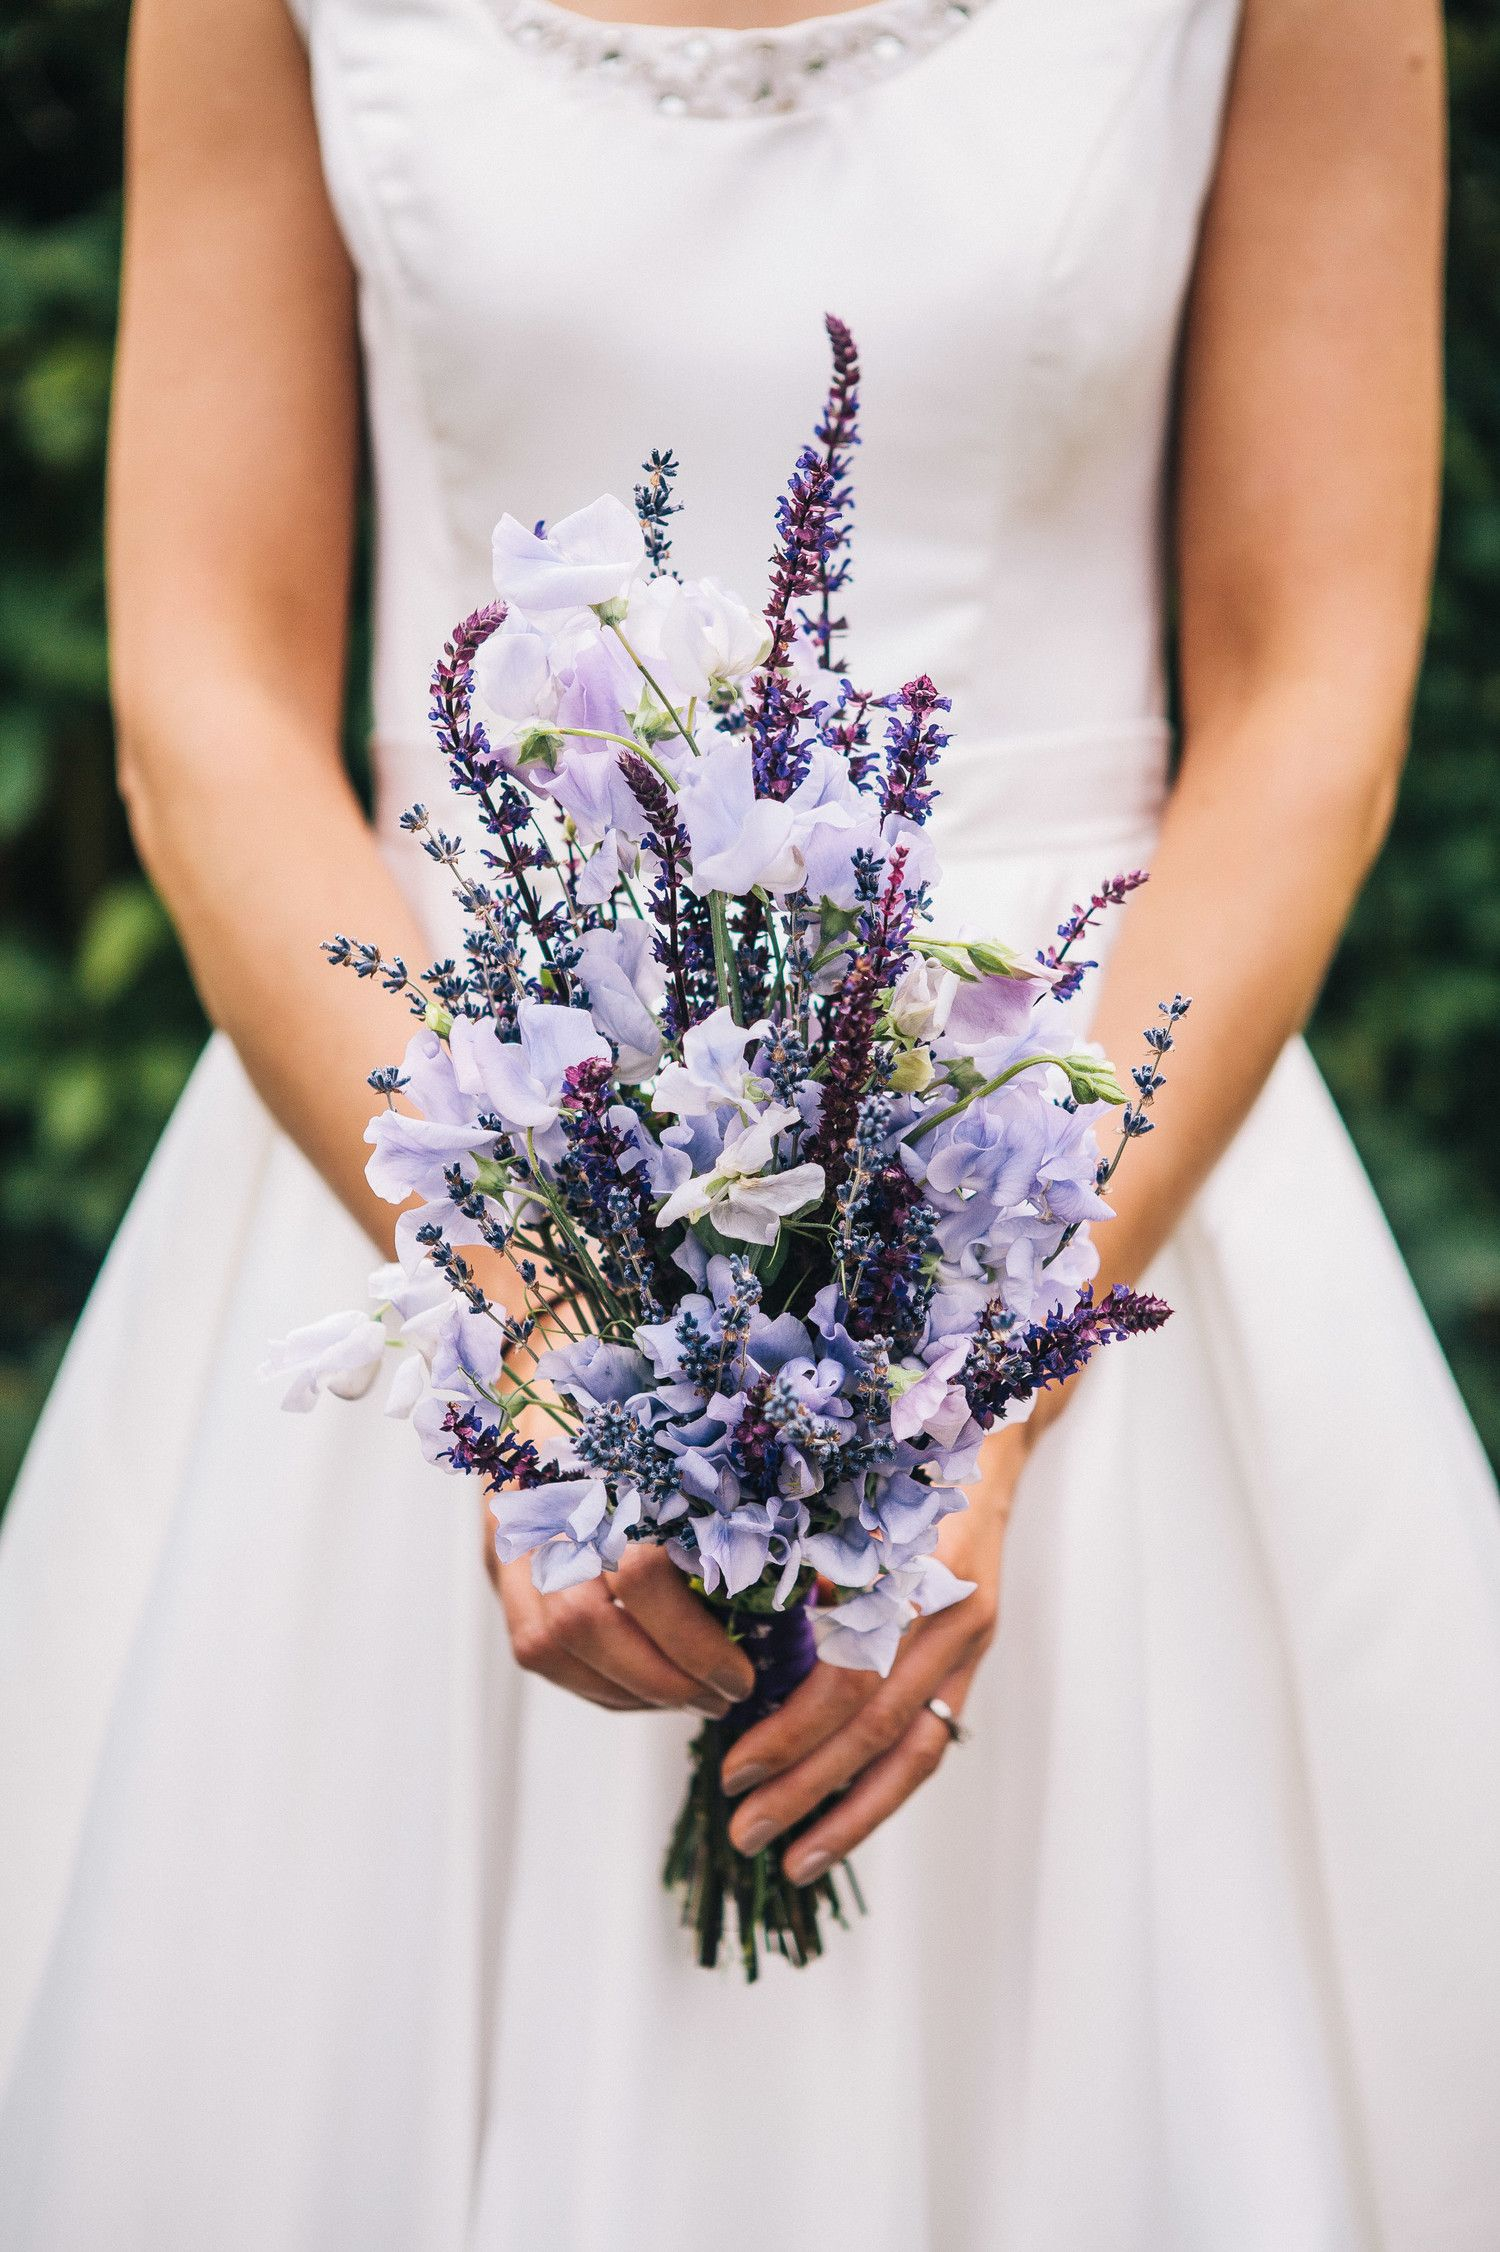 25 Beautiful Purple Wedding Bouquets We Love is part of Lavender wedding bouquet - Consider this unexpected hue for your bigday arrangement